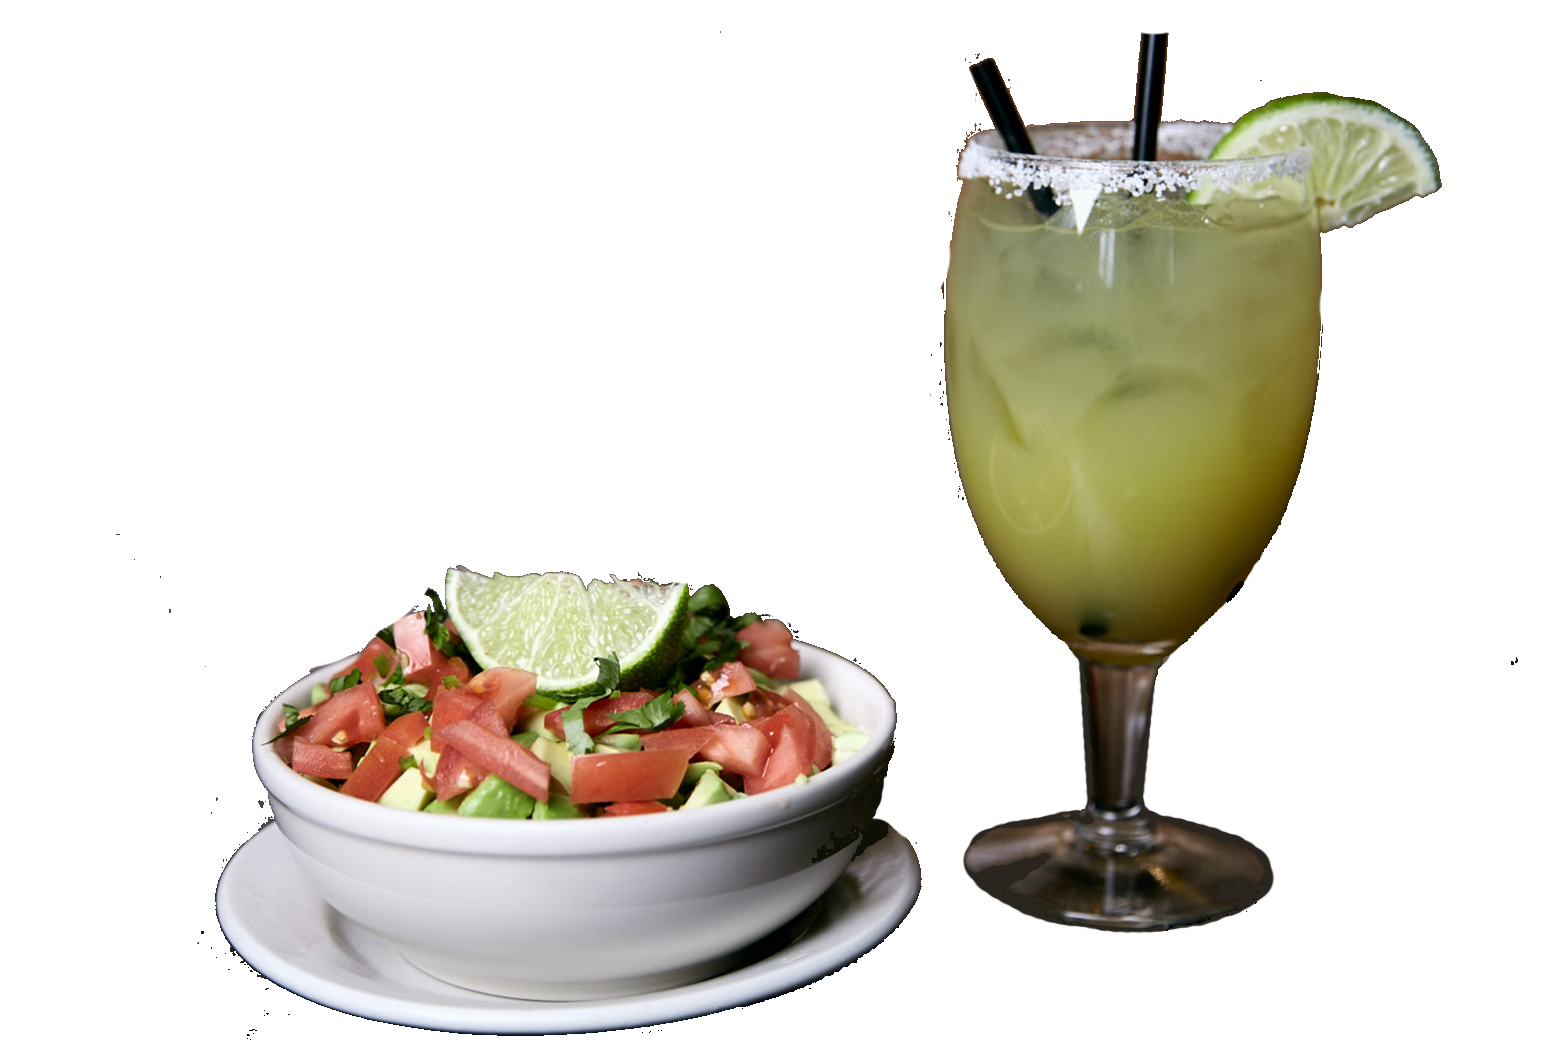 La Botana Mexican Restaurant Winston Salem food & drink